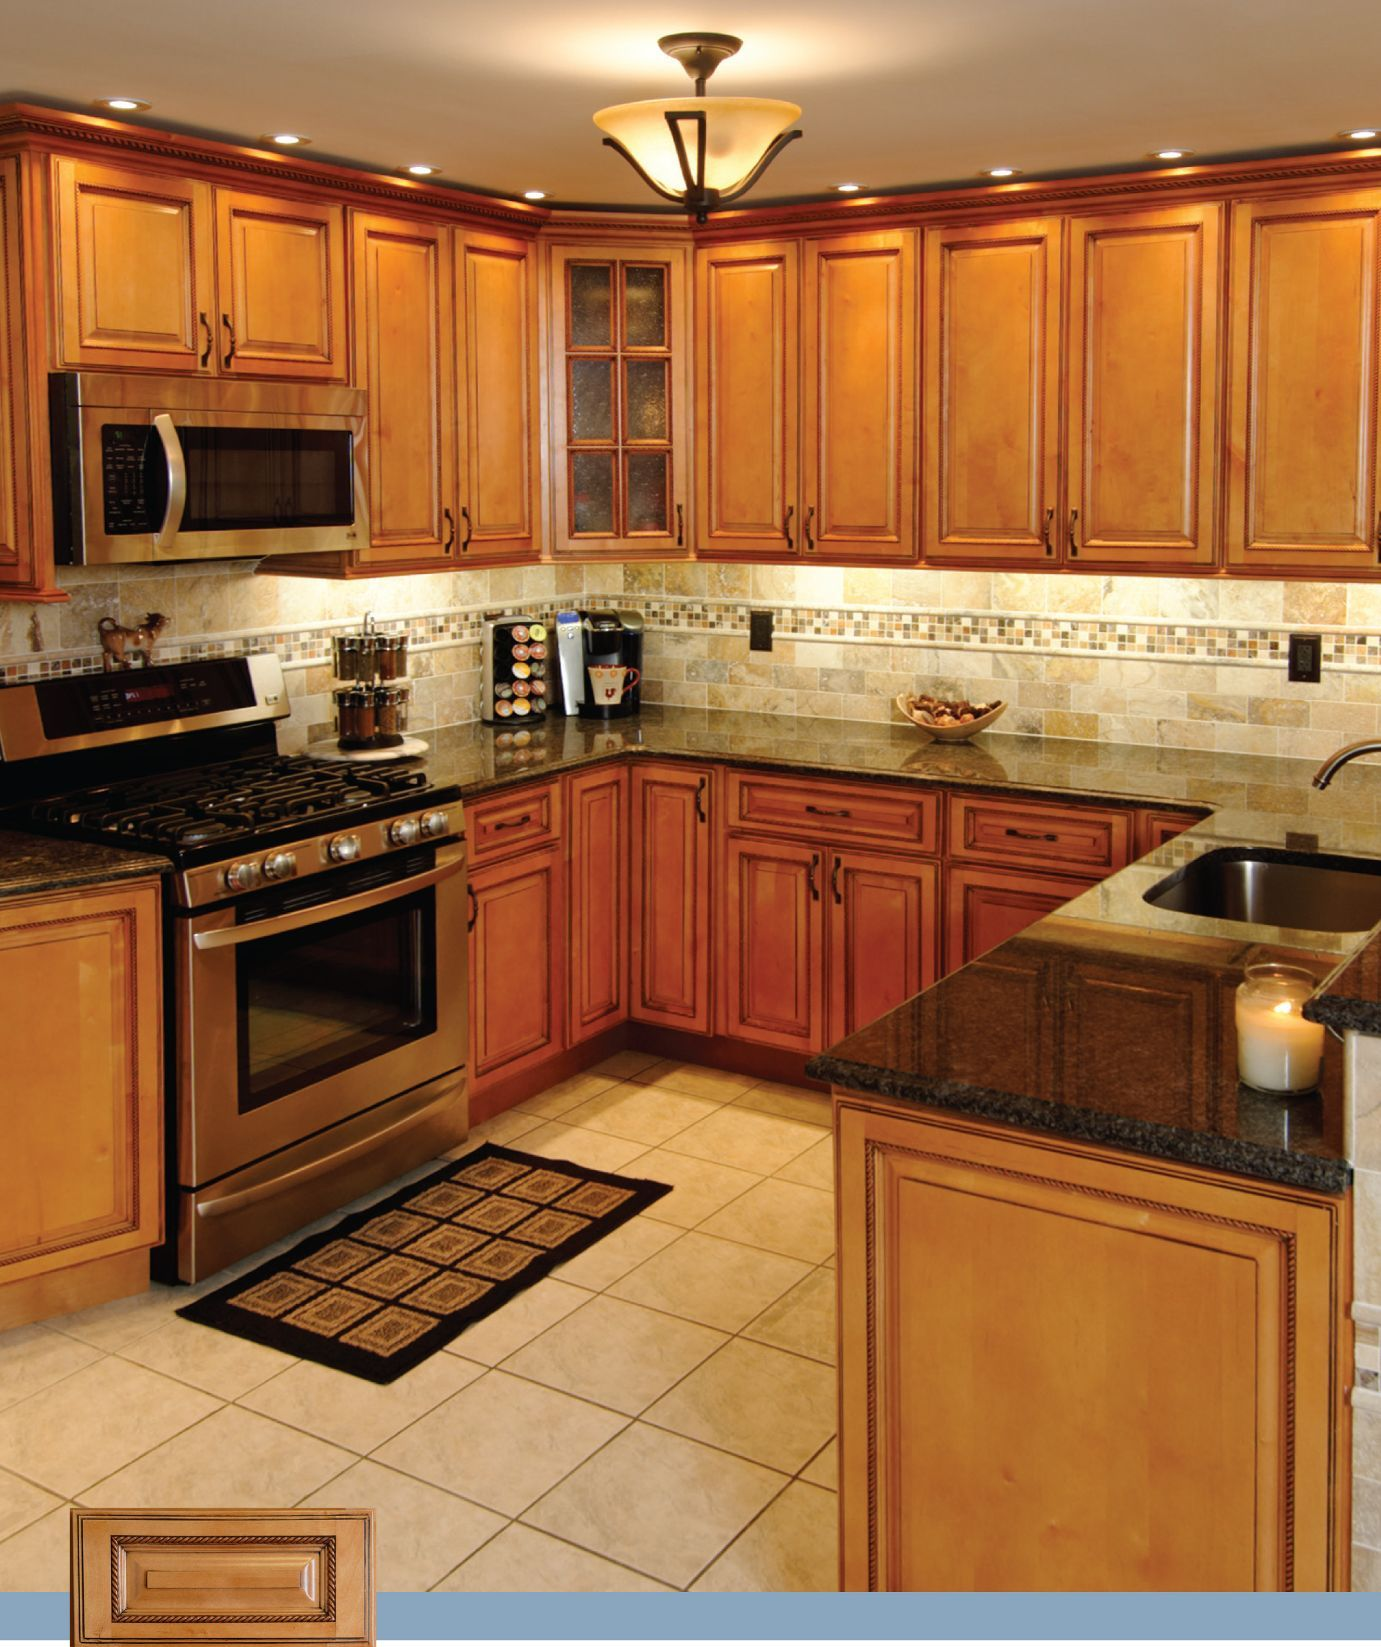 Black Kitchen Cabinet Ideas: Home Pictures Kitchen Backsplash Ideas Kitchen Kitchen